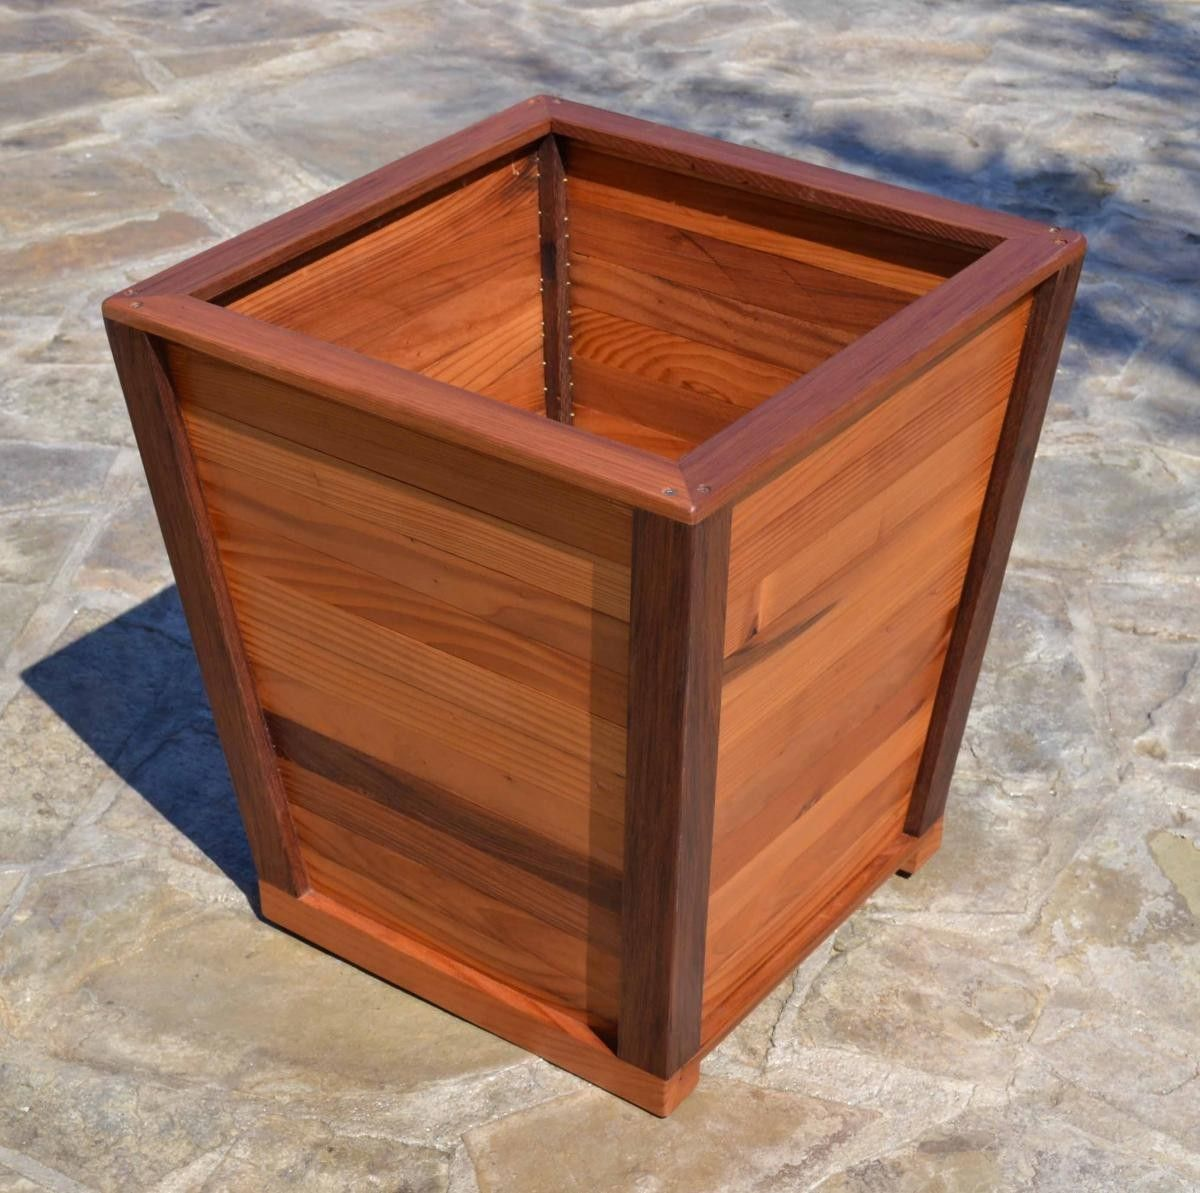 Diy Square Planter Box: Redwood Planter Boxes